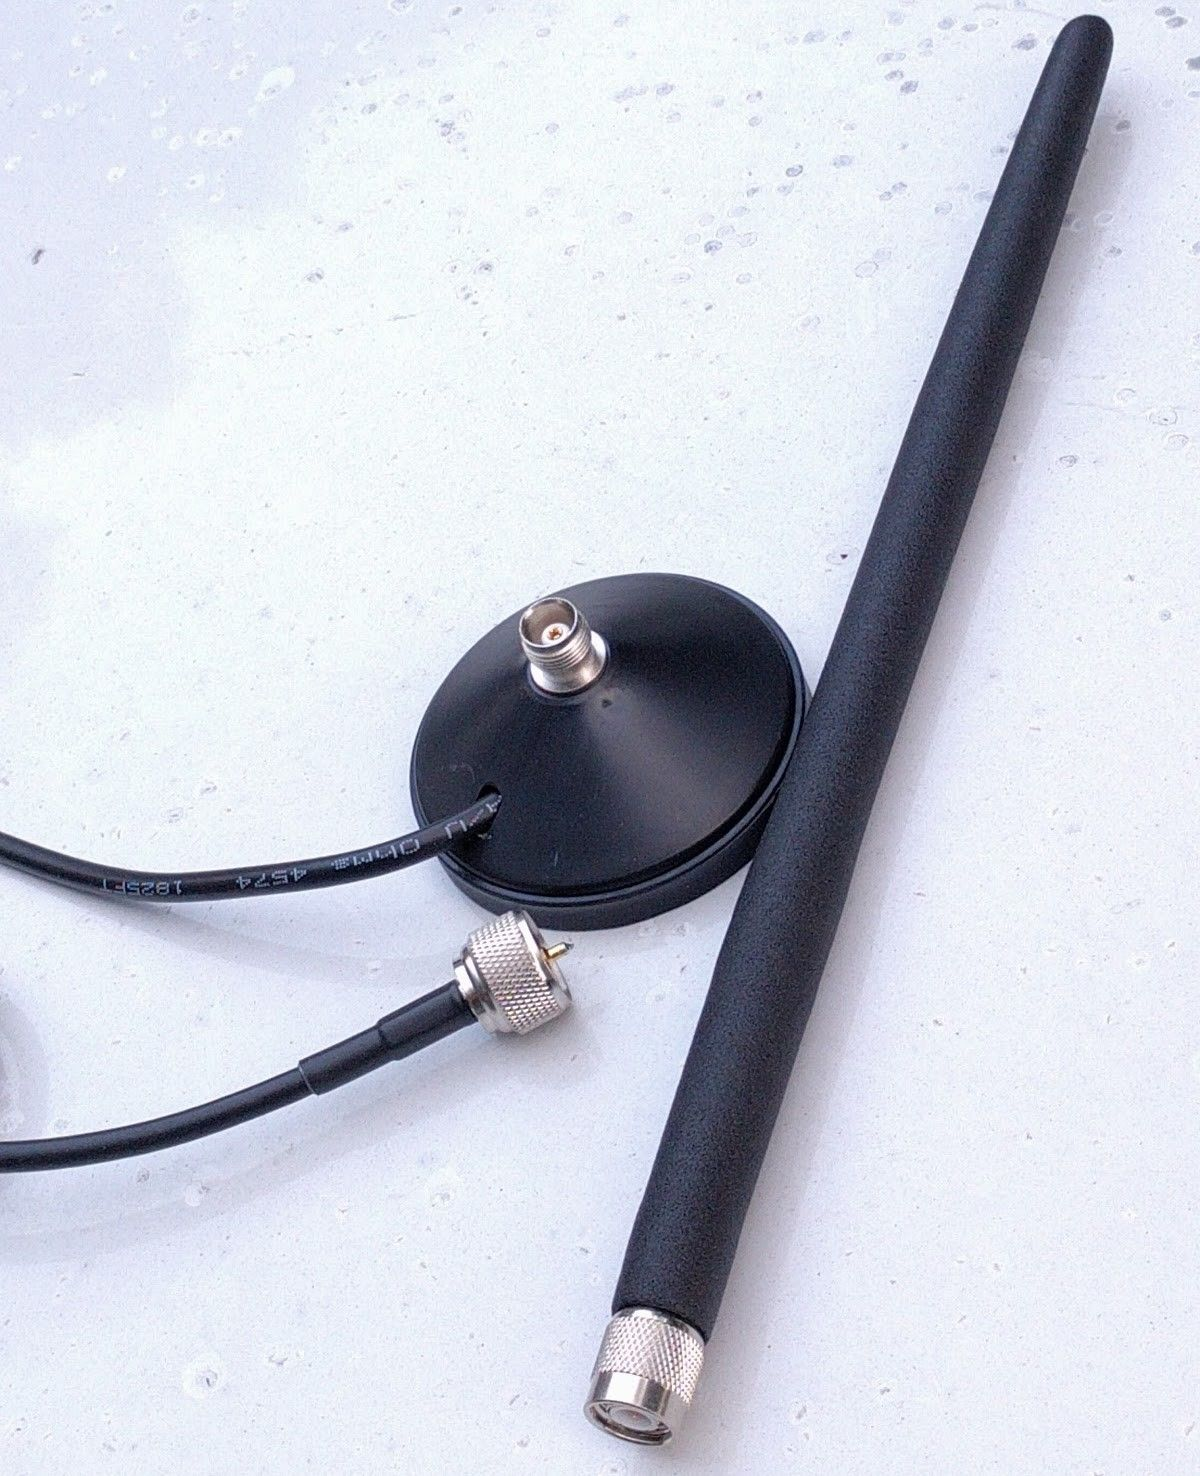 Magnetic CB Rubber Flex CB 27MHz Antenna with 9 FT cable. BEST ONE. Made In USA